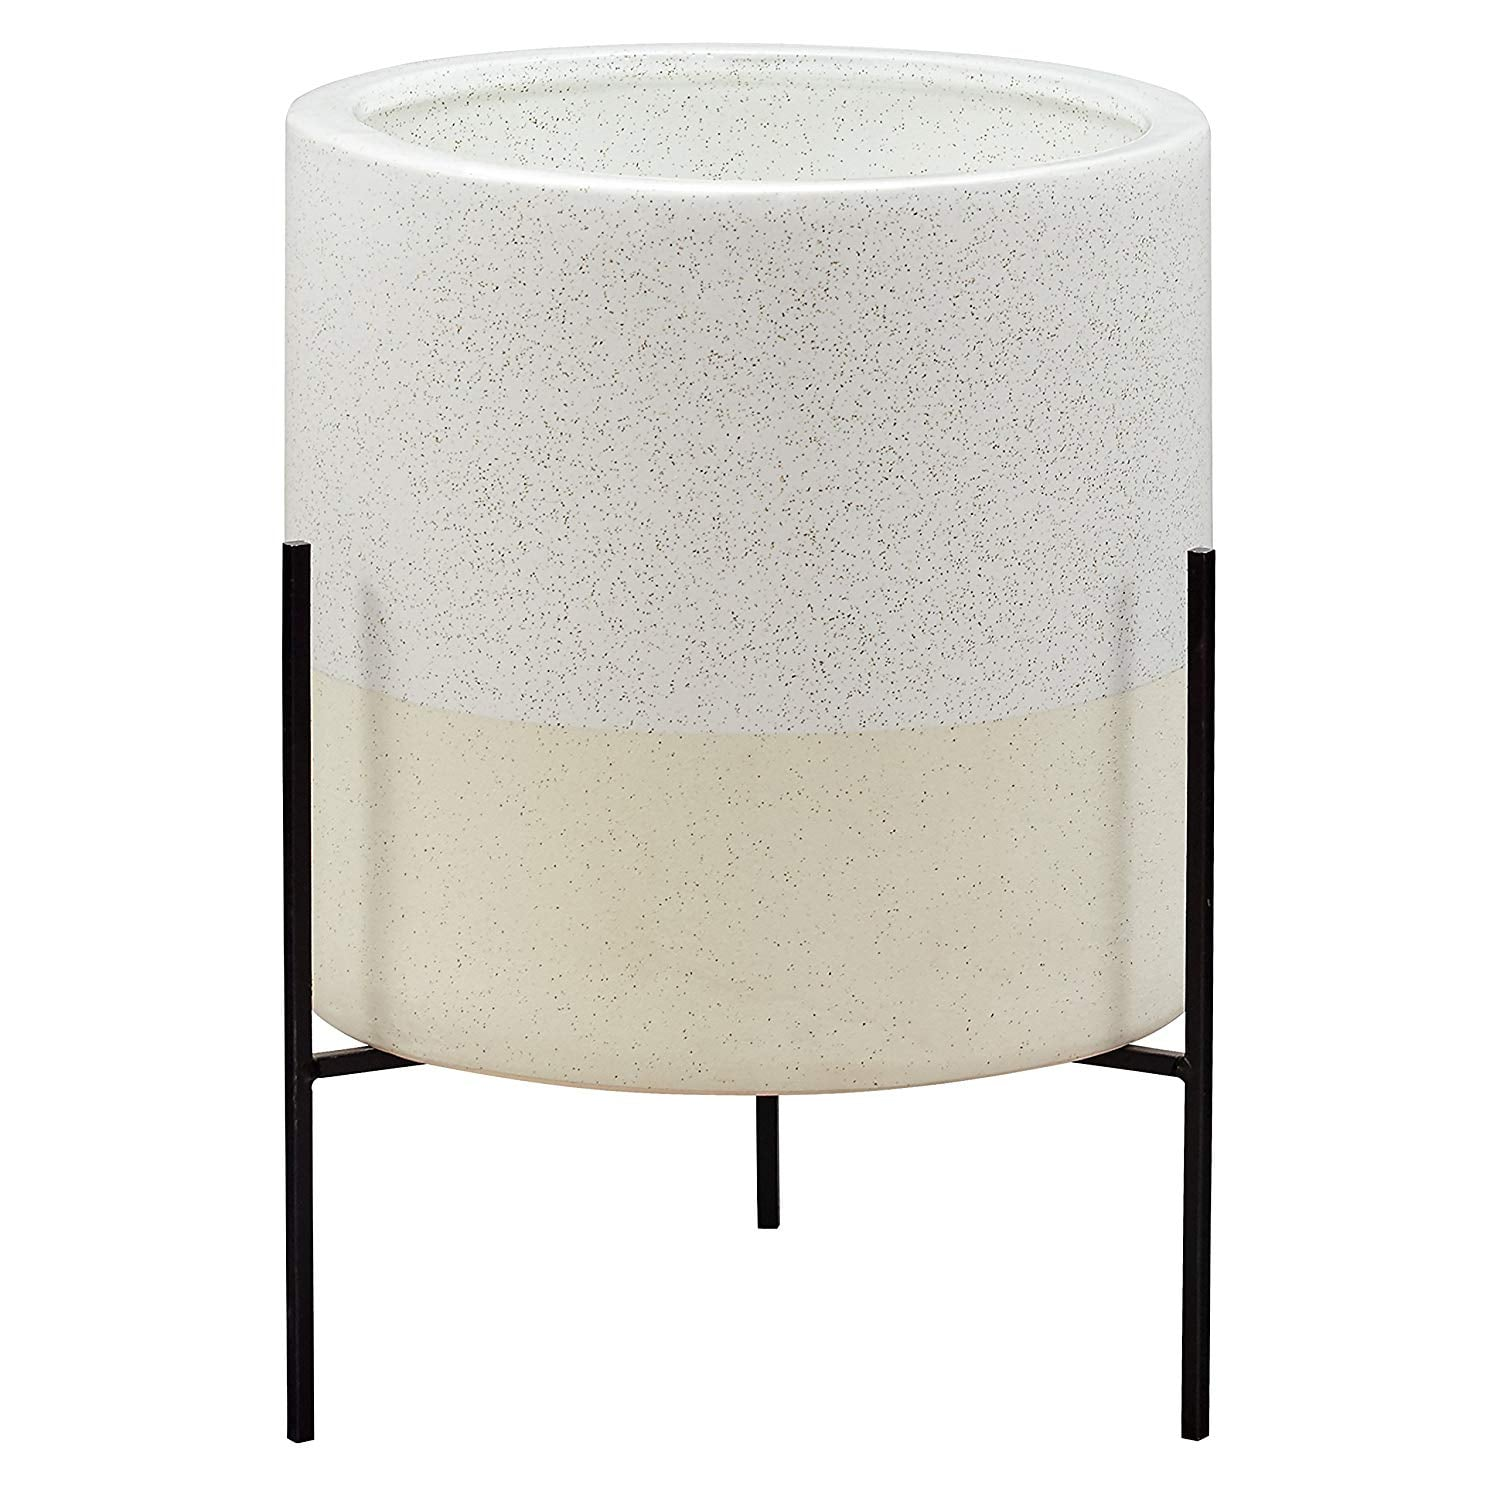 Rivet Mid Century Ceramic Planter With Stand Unwrap Our